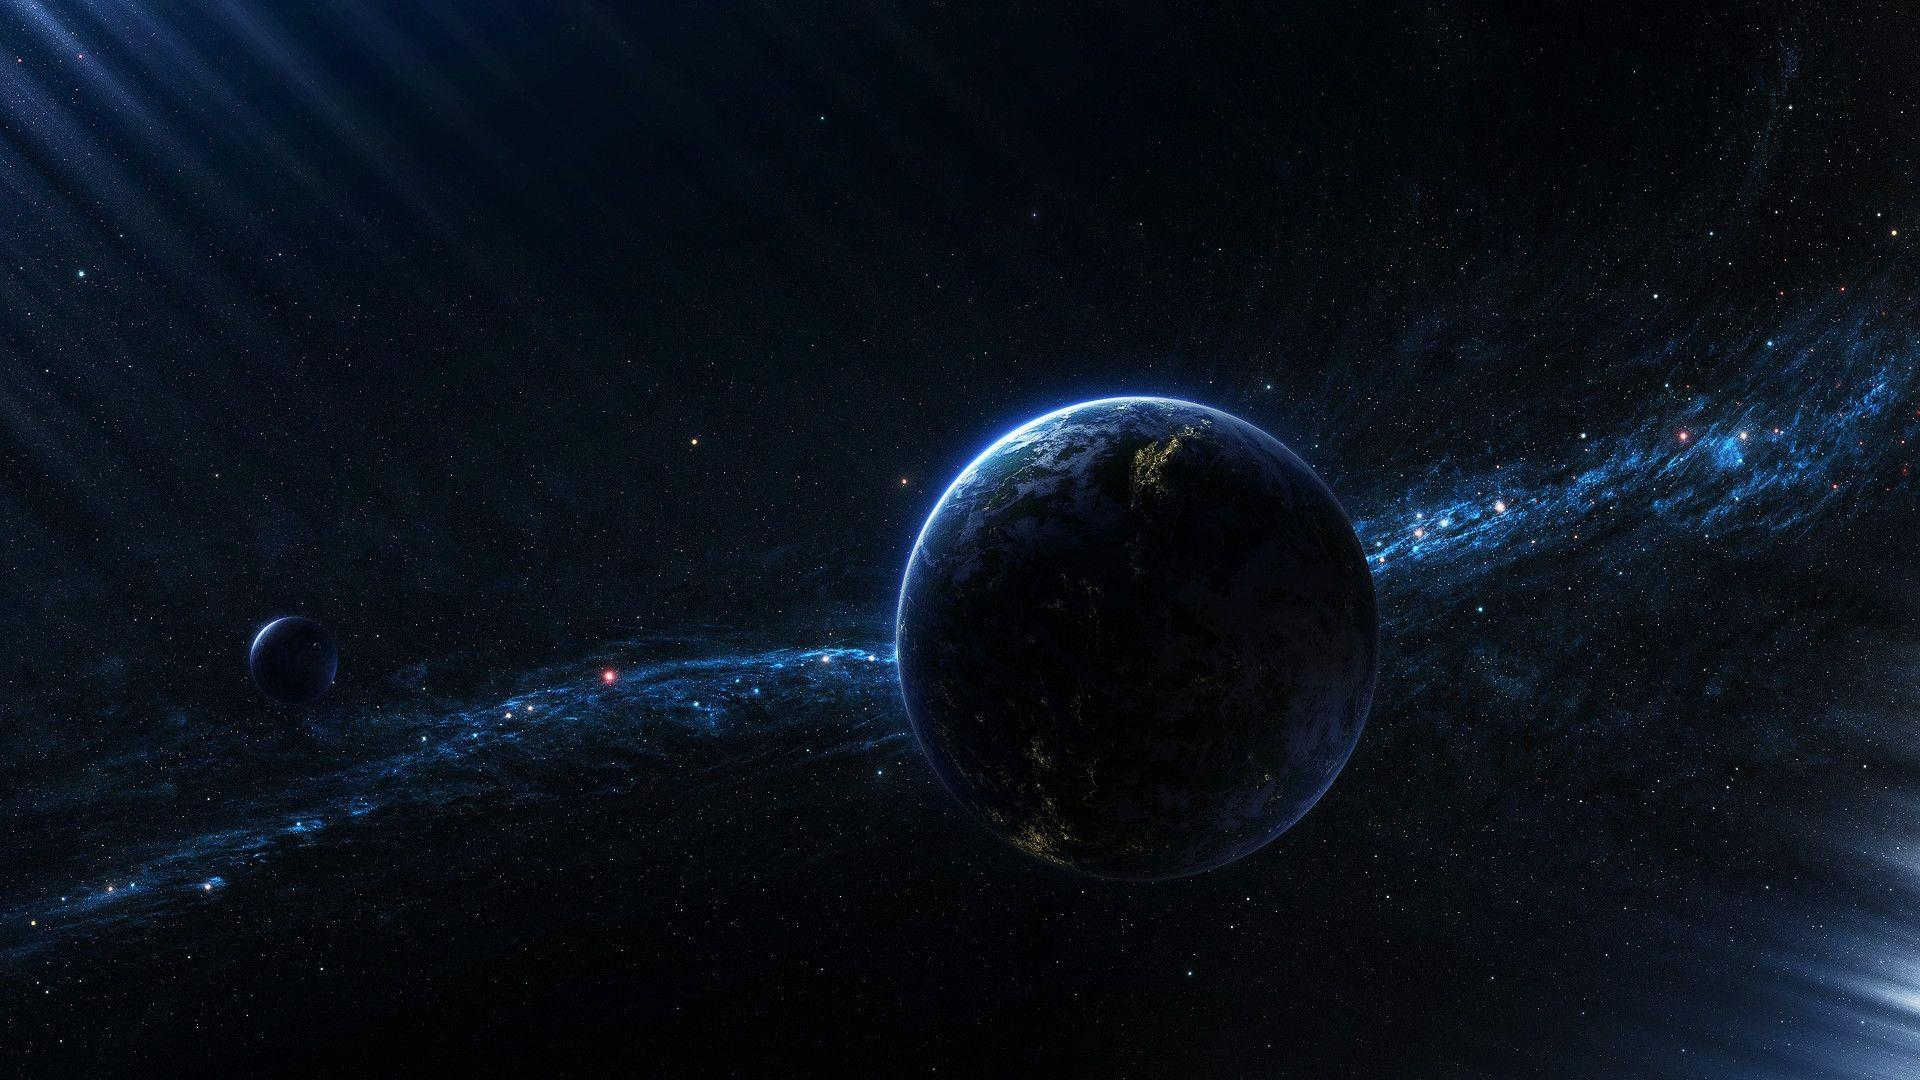 space 1080p wallpaper landscape - photo #47